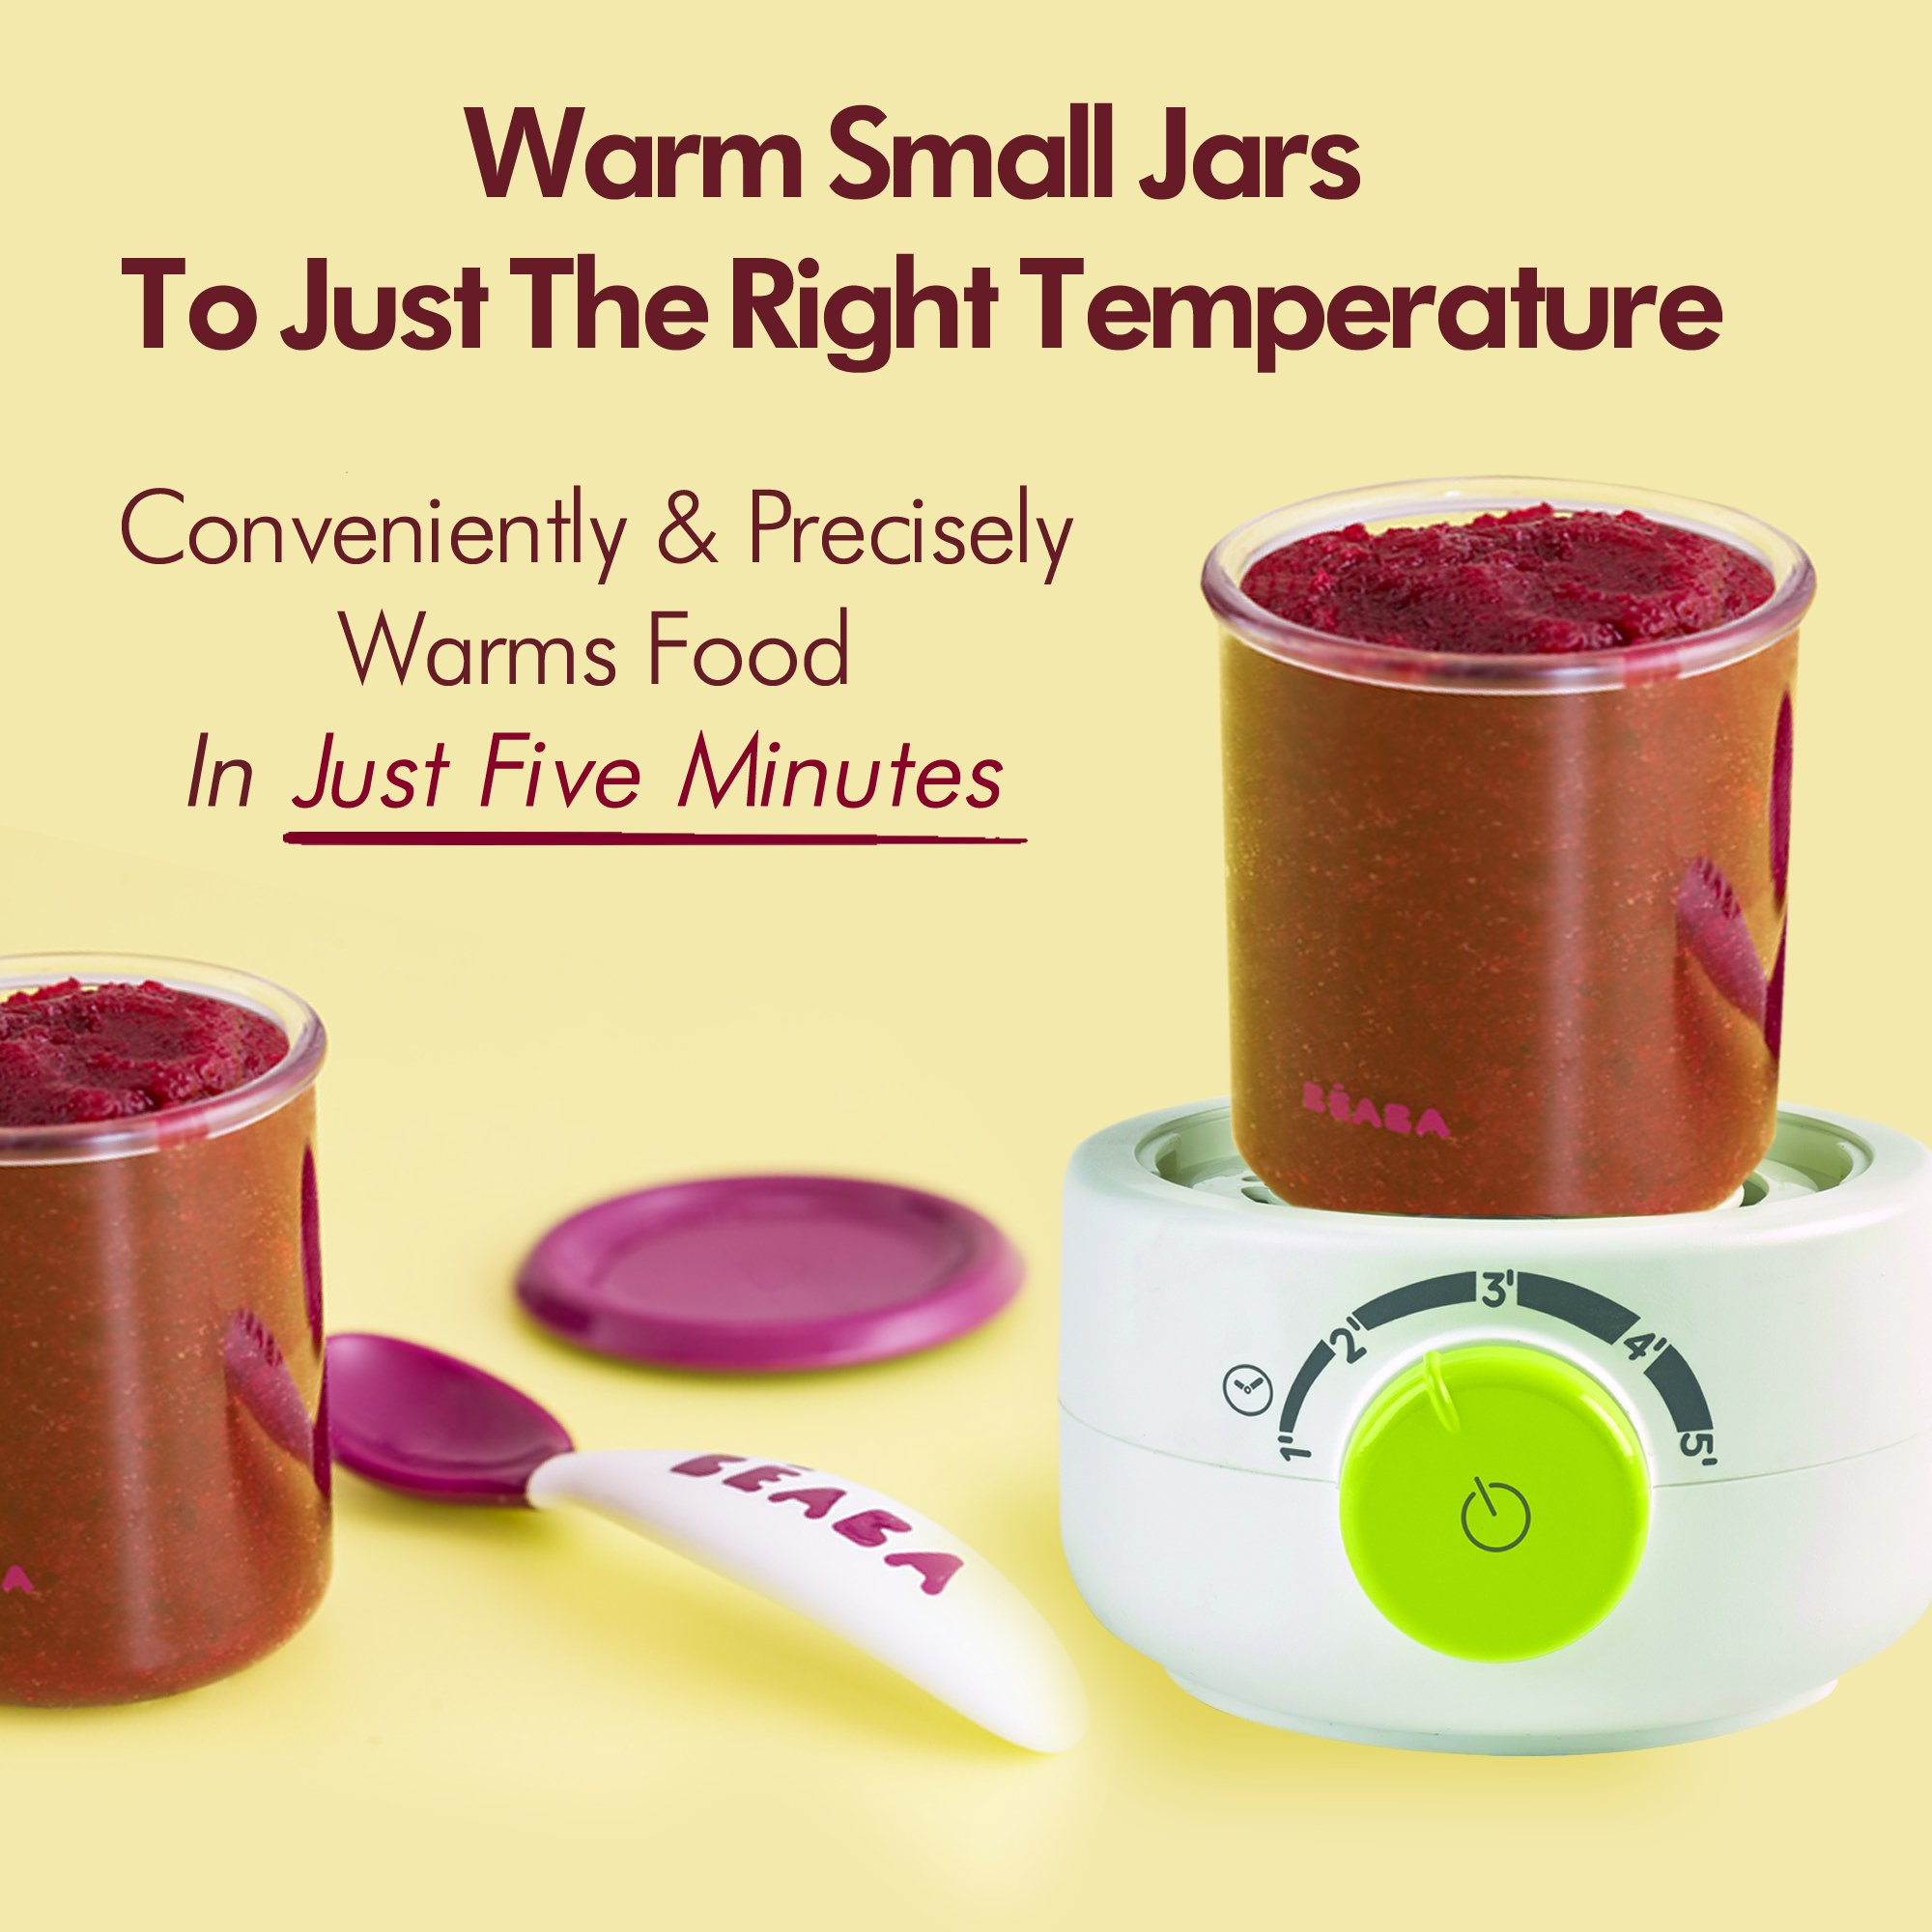 BEABA Quick Baby Bottle Warmer, Steam Sterilizer, Baby Food Heater (3-in-1) Warm Milk in Just Two Minutes, BPA and Lead Free, Simple Temperature Control, Fits All Bottle Sizes - Even Wide Neck, Clouds by BEABA (Image #3)